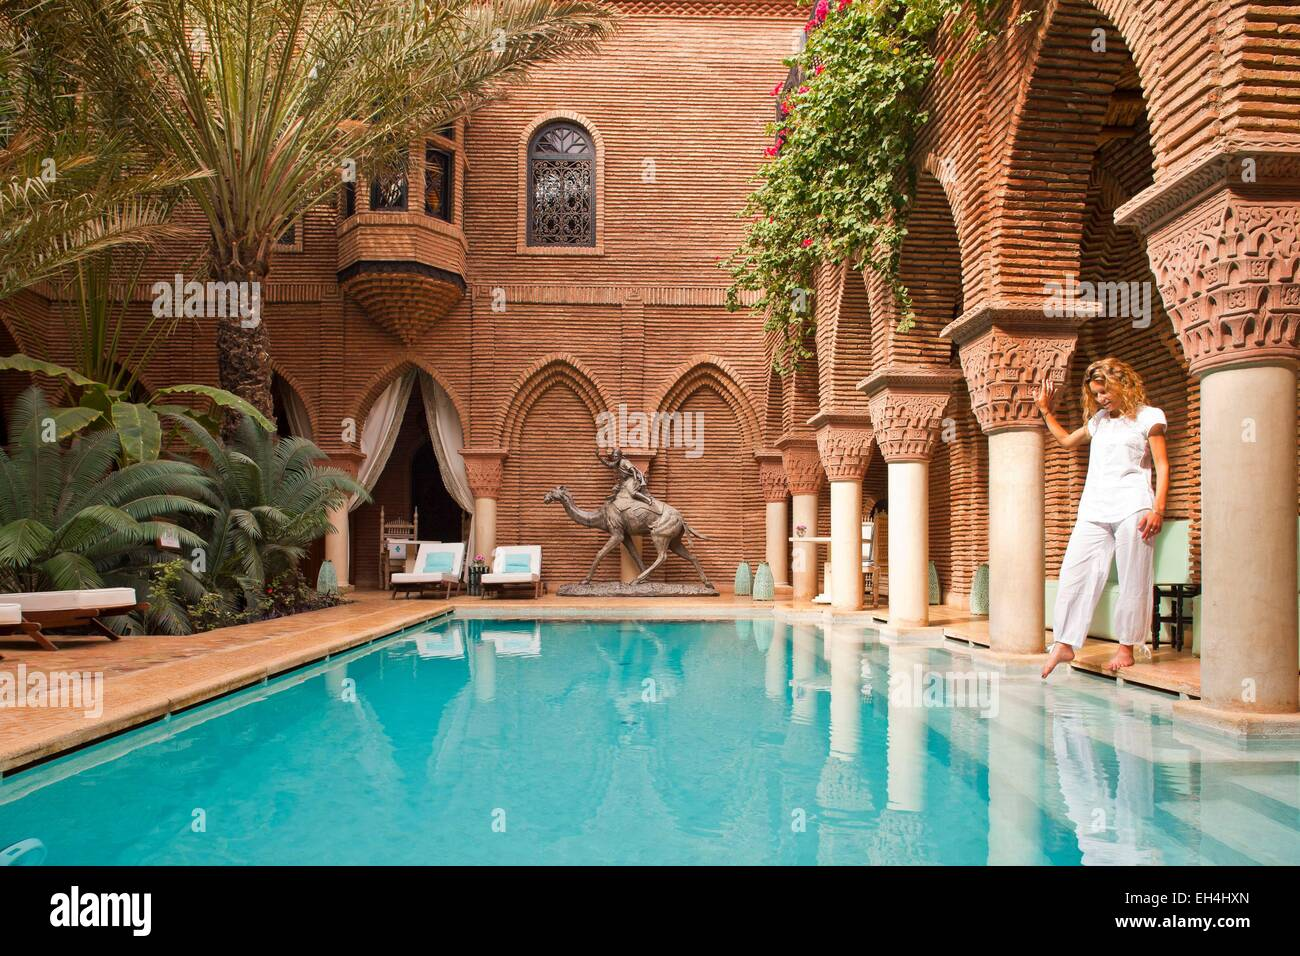 Morocco high atlas marrakech imperial city luxury hotel la sultana 5 stars woman in the pool